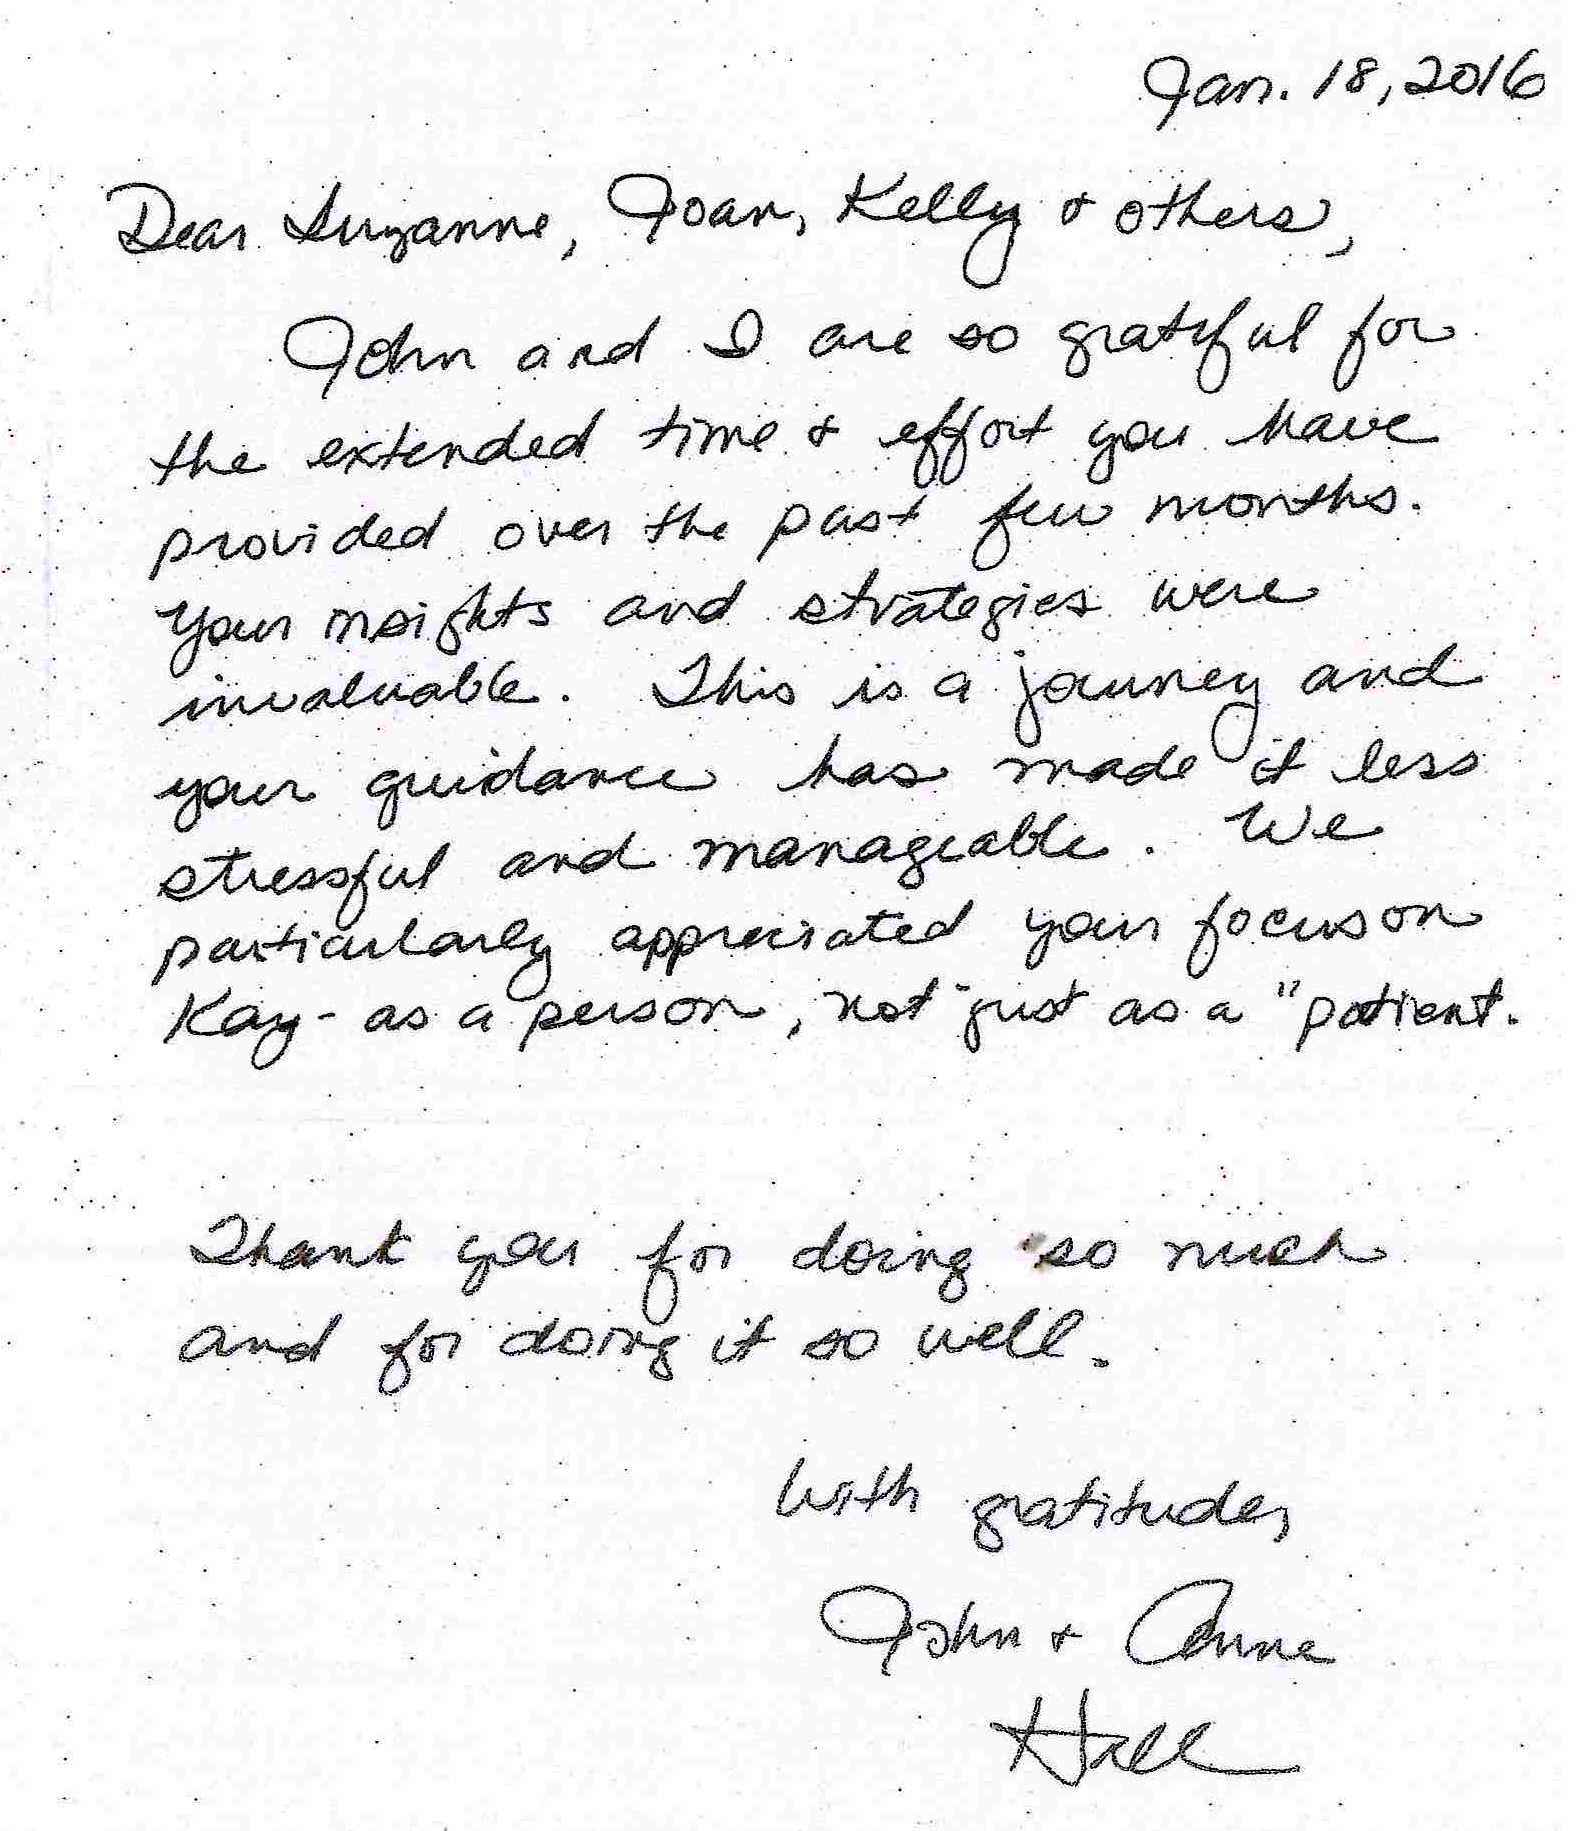 John and Anne Hall Testimonial